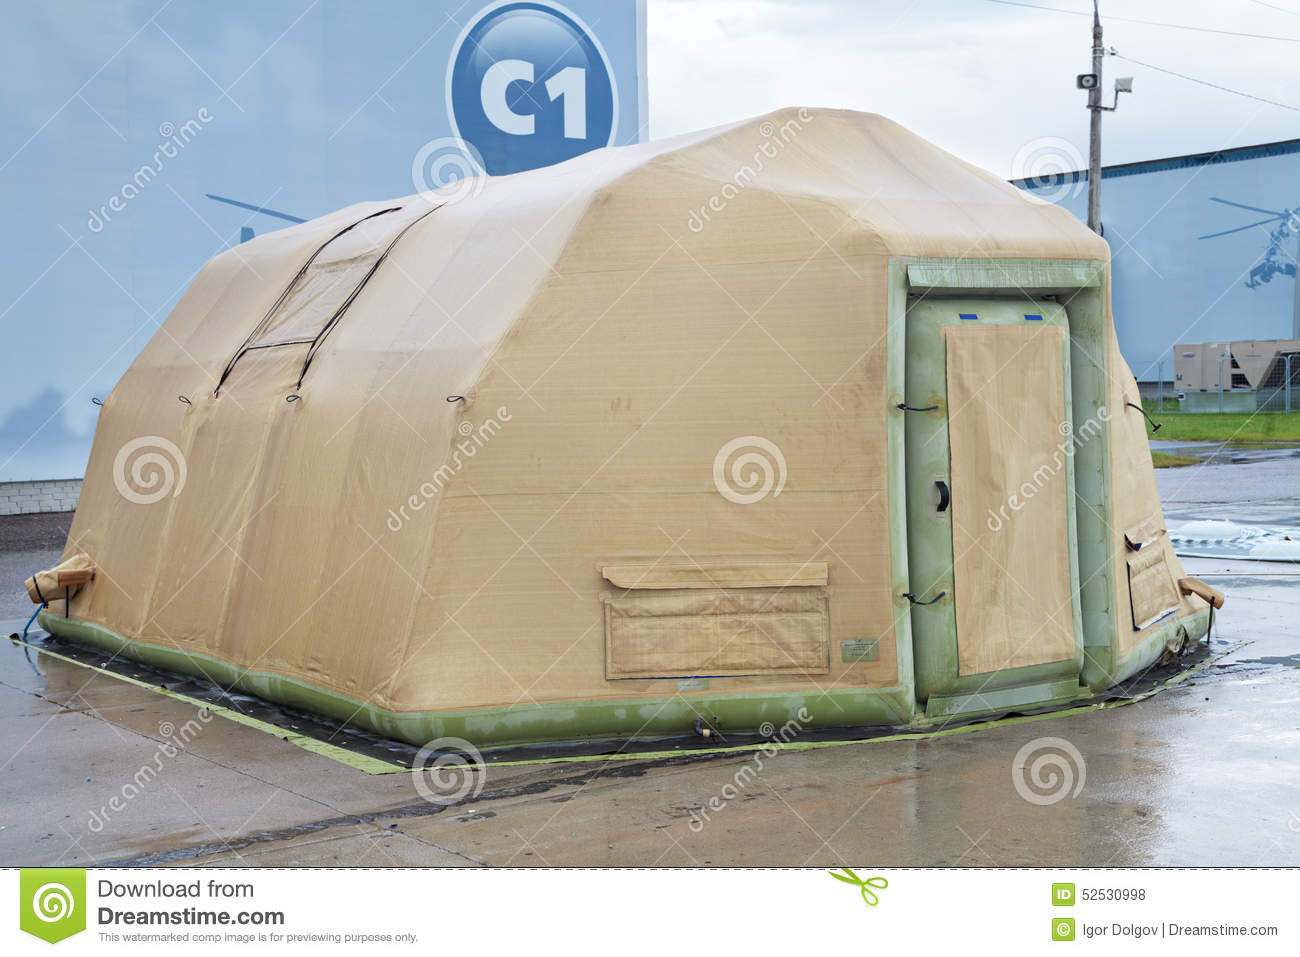 Inflatable tent & Inflatable tent editorial stock photo. Image of mobile - 52530998